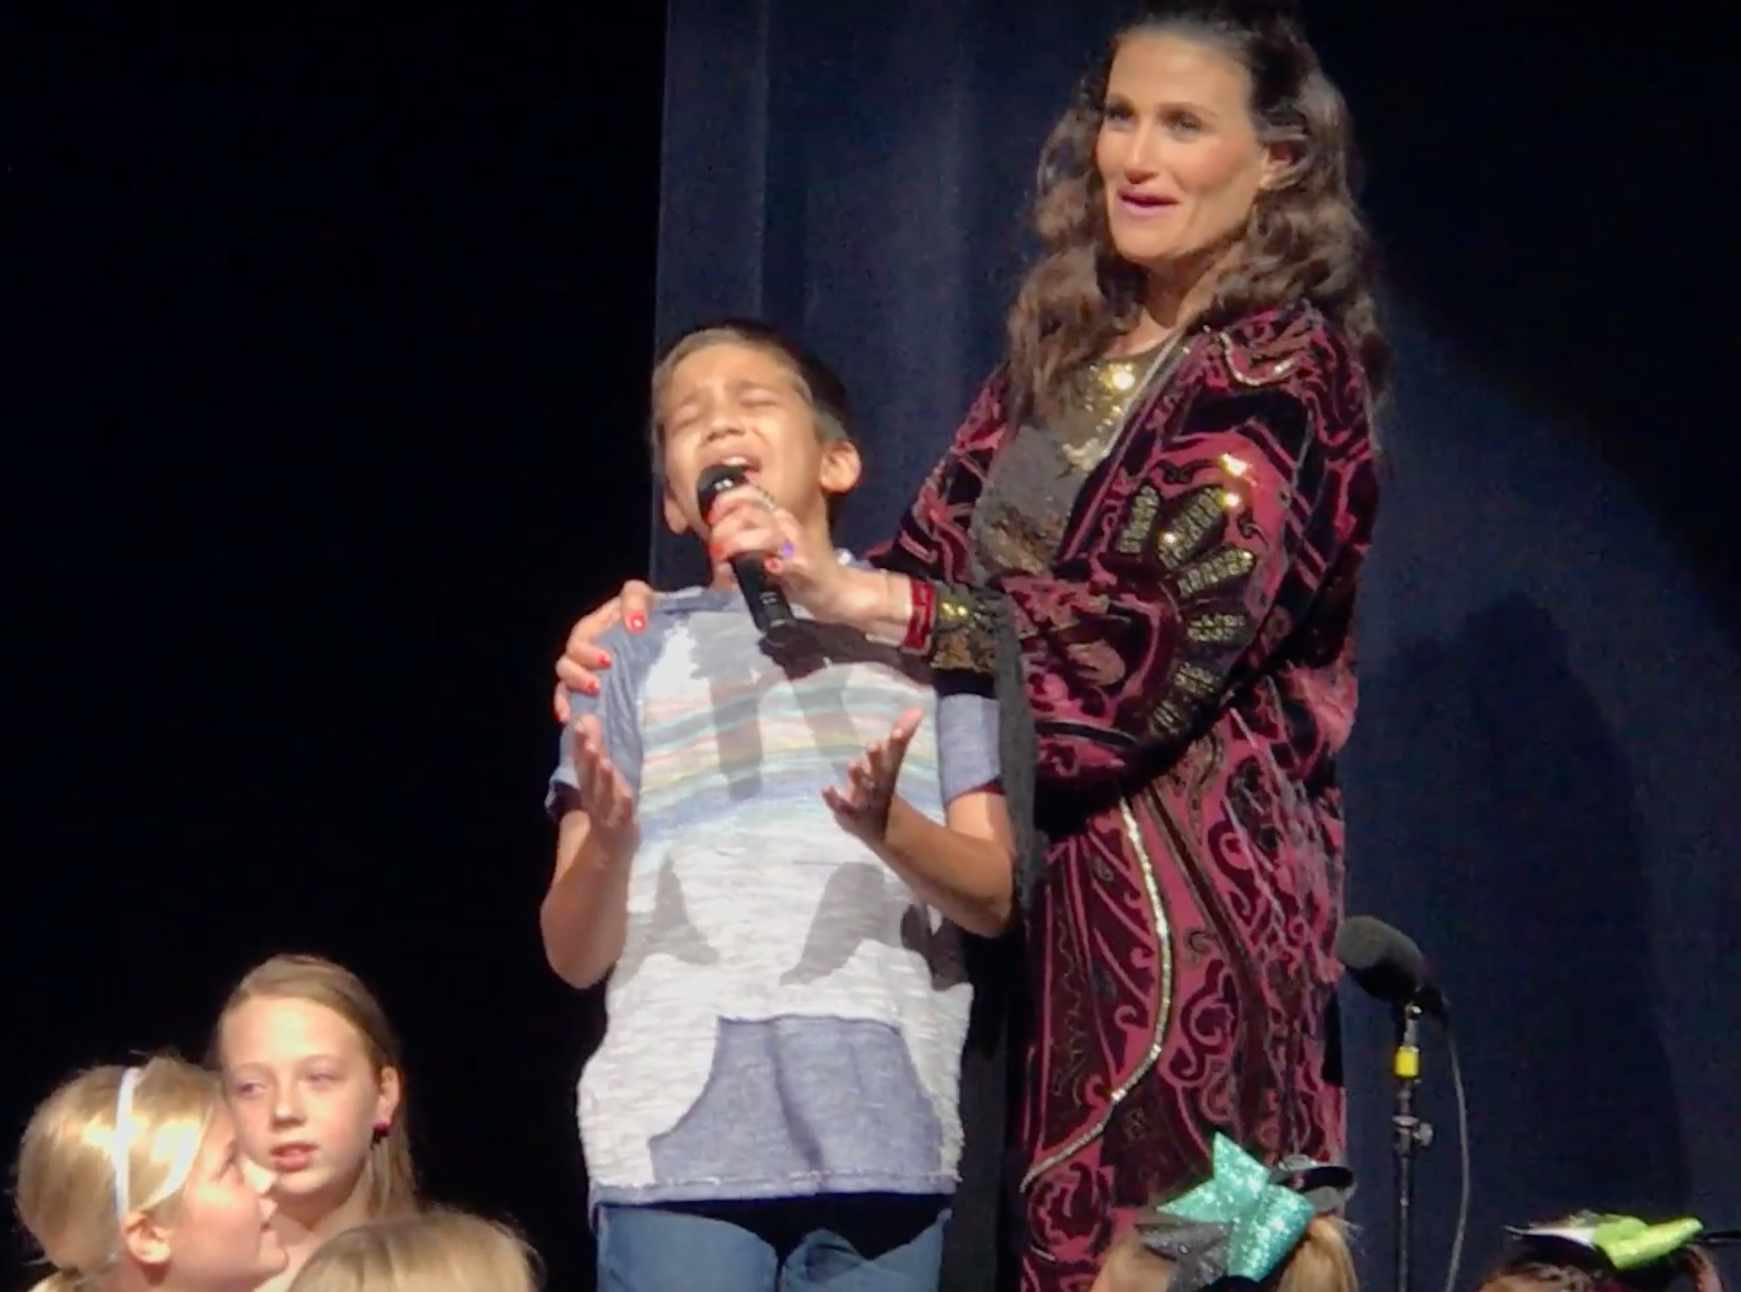 Watch Little Boy Slay 'Let It Go' at an Idina Menzel Concert